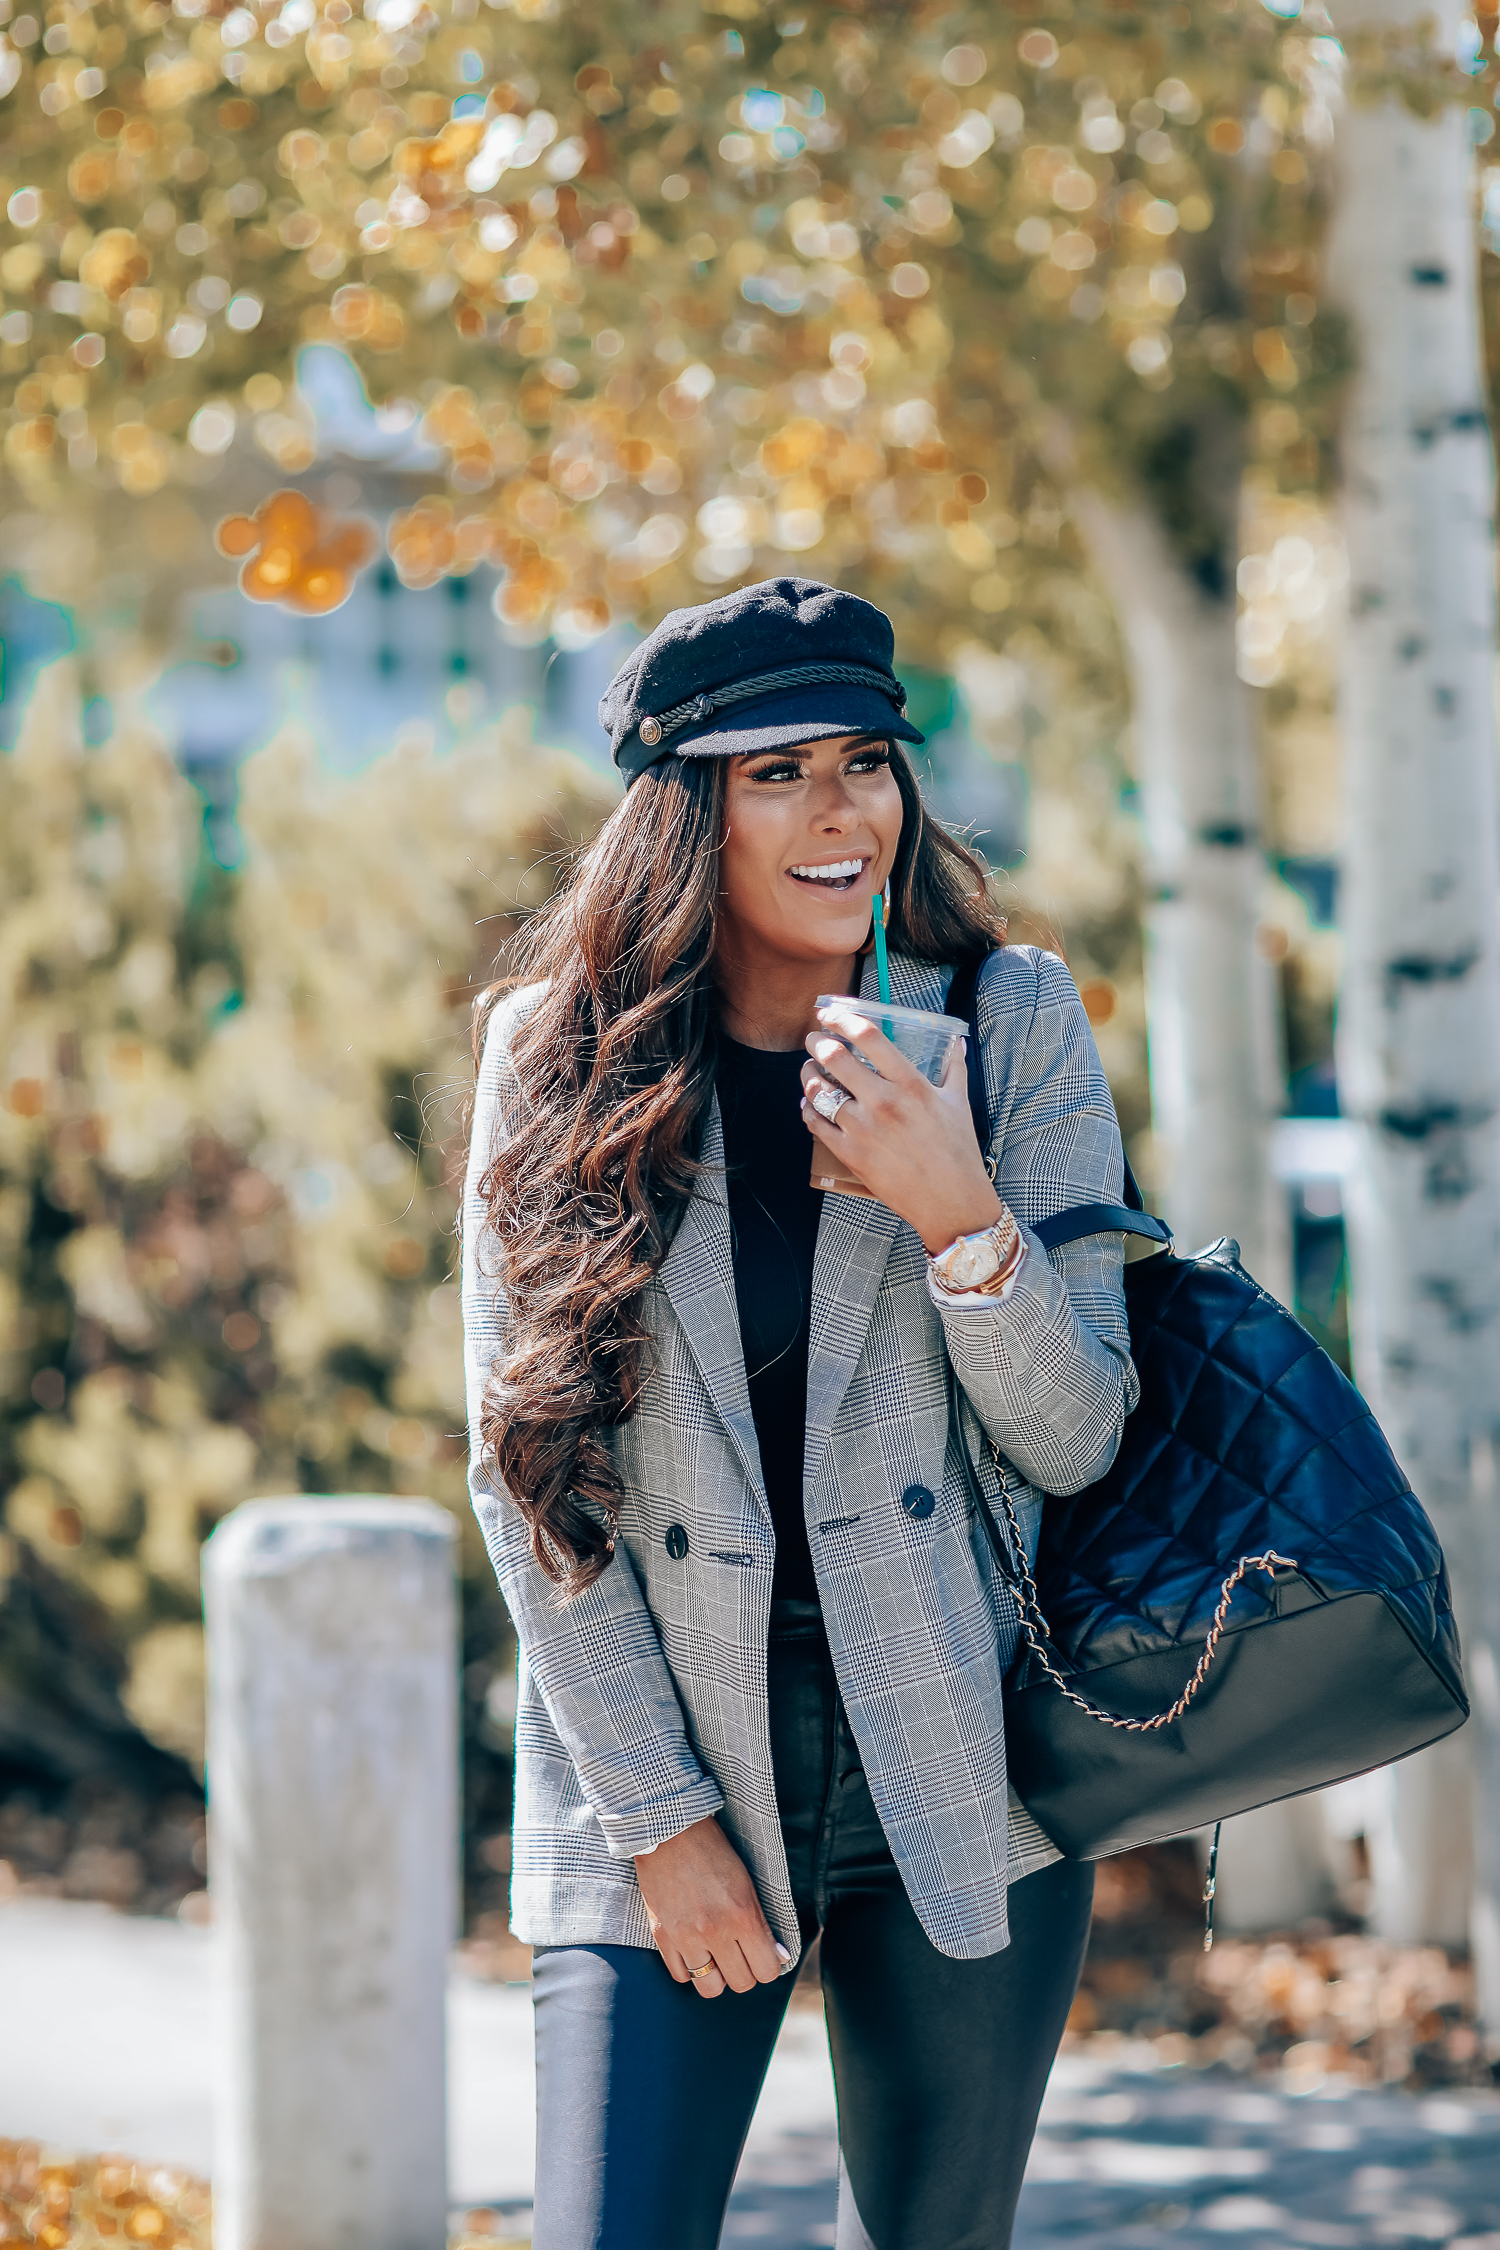 Oversized plaid blazer styled for Fall by top US fashion blog, The Sweetest Thing: image of a woman wearing an Aqua oversized plaid blazer, Splendid long sleeve top, BlankNYC vegan leggings, Marc Fisher booties, Chanel backpack, Baker boy cap, a Rolex watch, Argento Vivo earrings, and Cartier bracelets | fall fashion outfits pinterest 2019, plaid blazer outfit fall, leather pants outfit fall, how to style a plaid blazer fall trends 2019, emily ann gemma-19